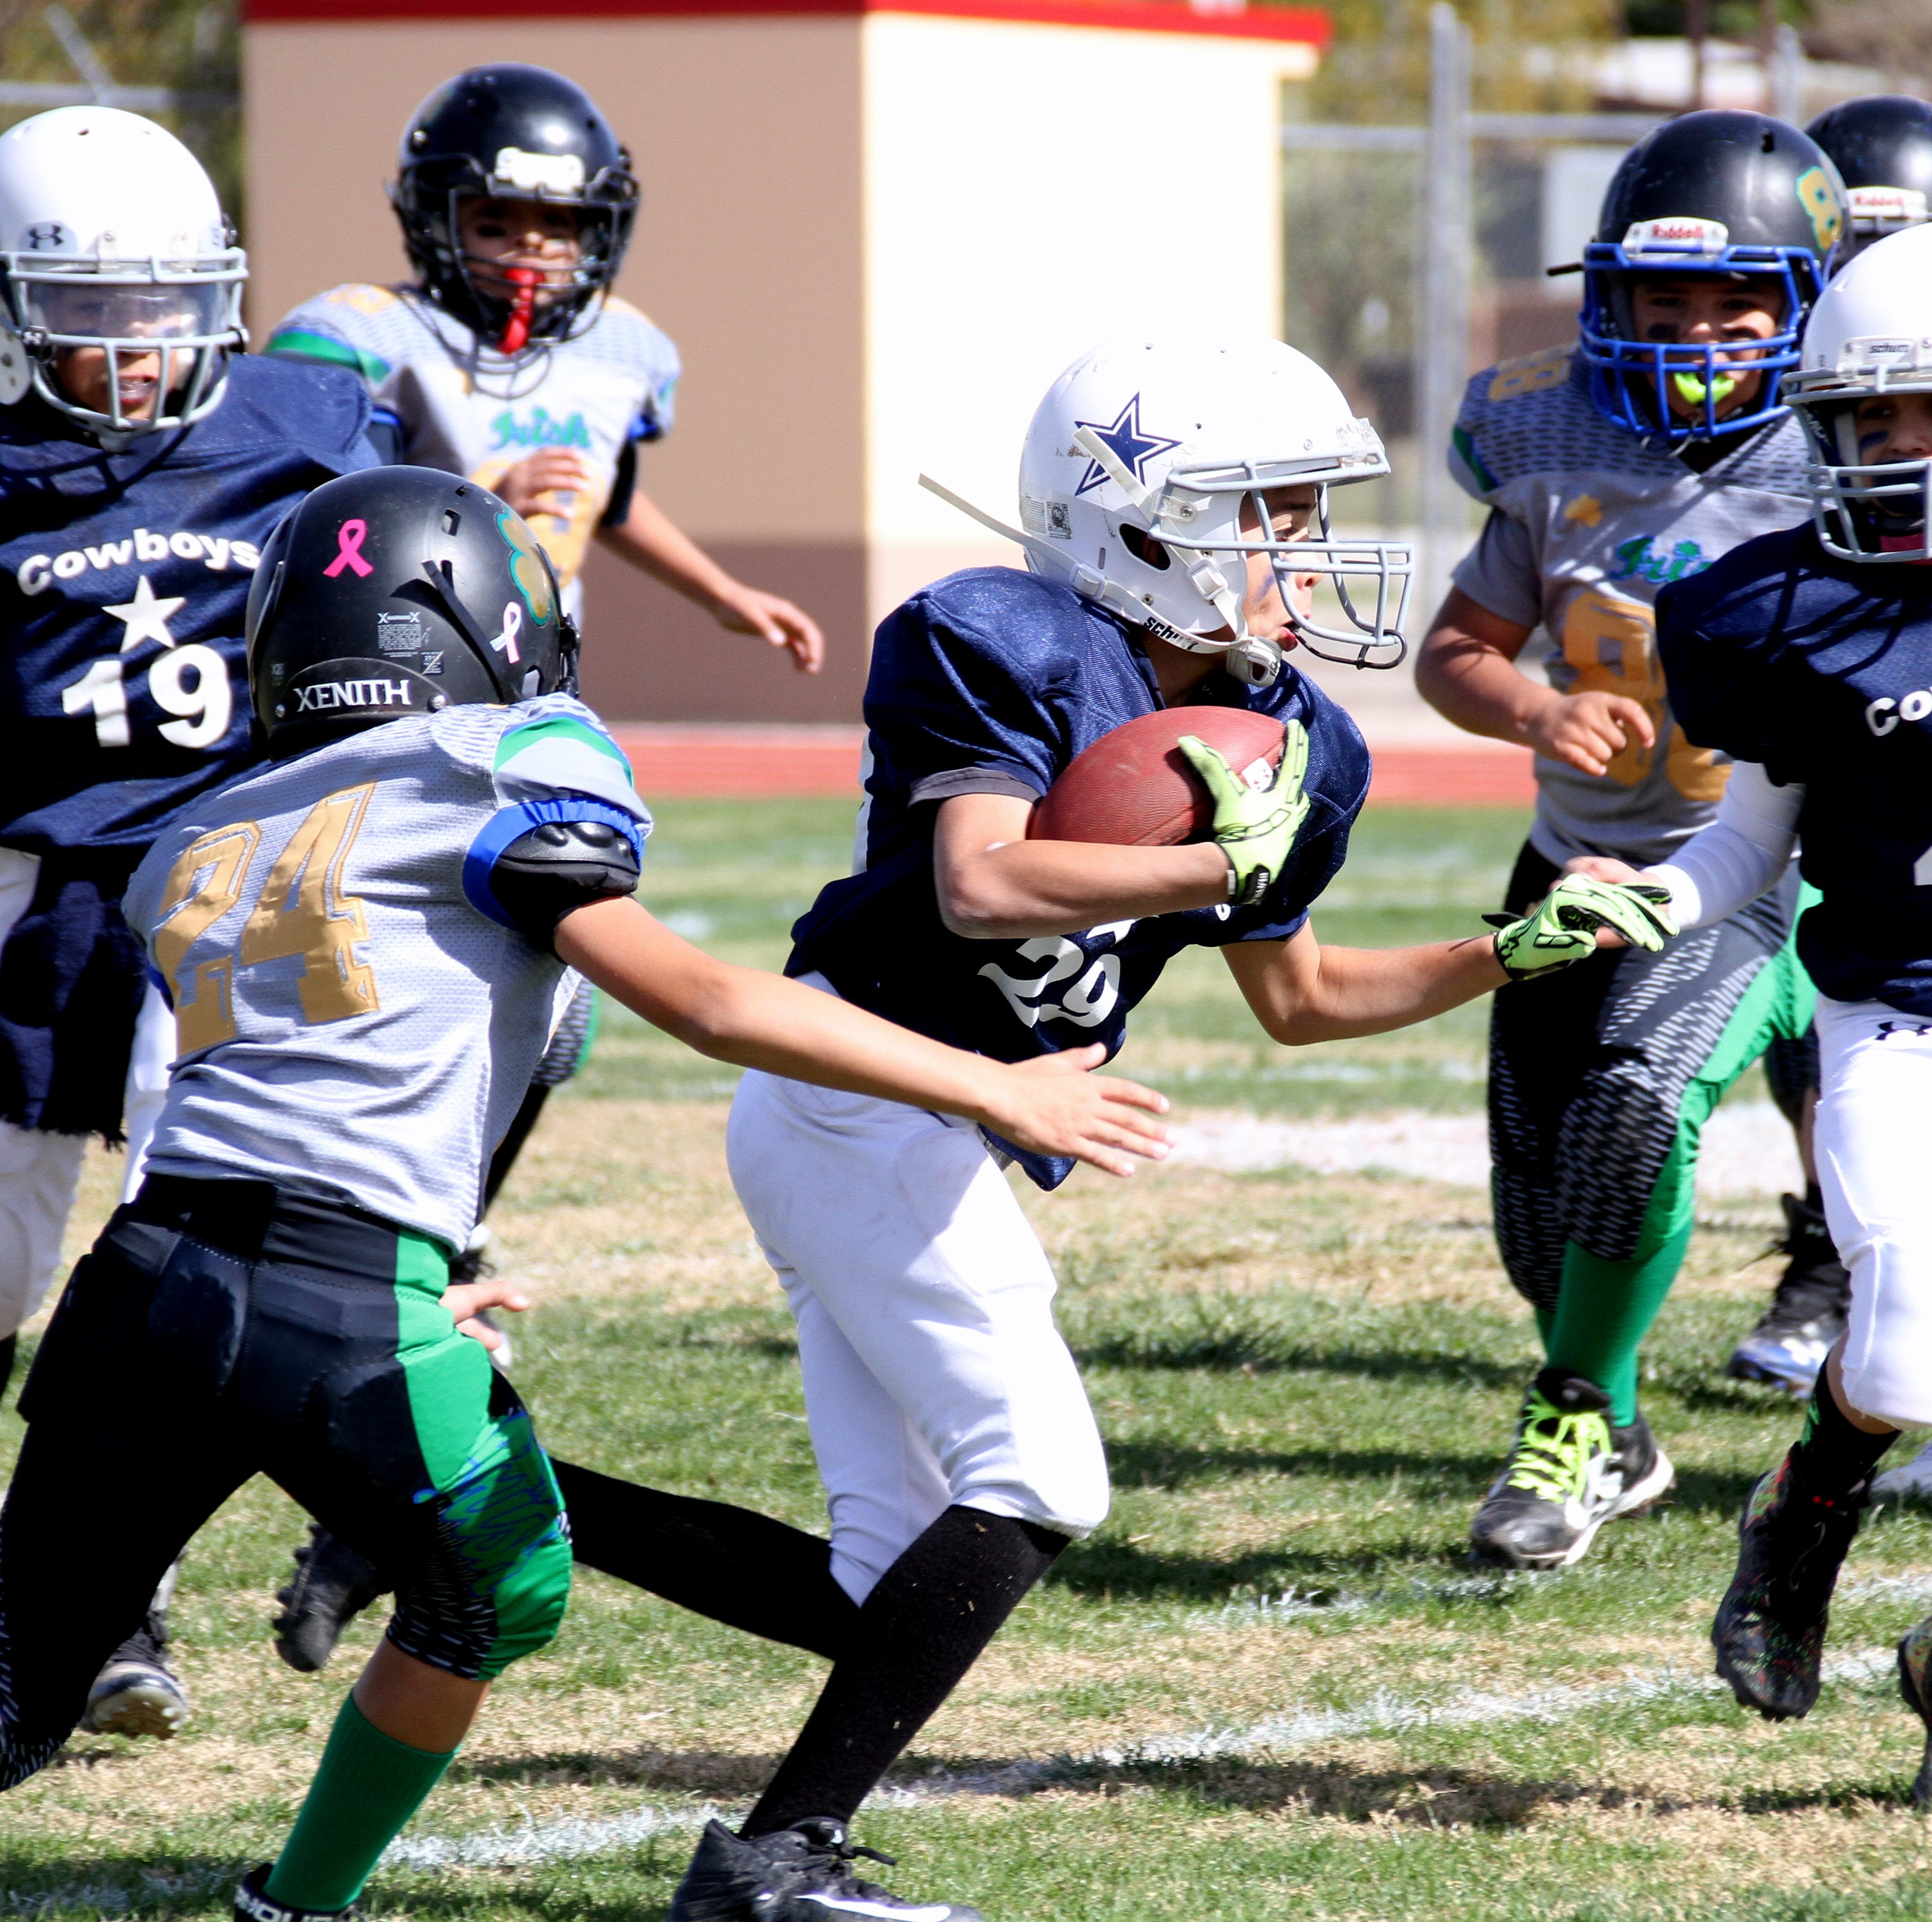 Deming Cowboys win Super Bowl in Southwestern New Mexico Football League